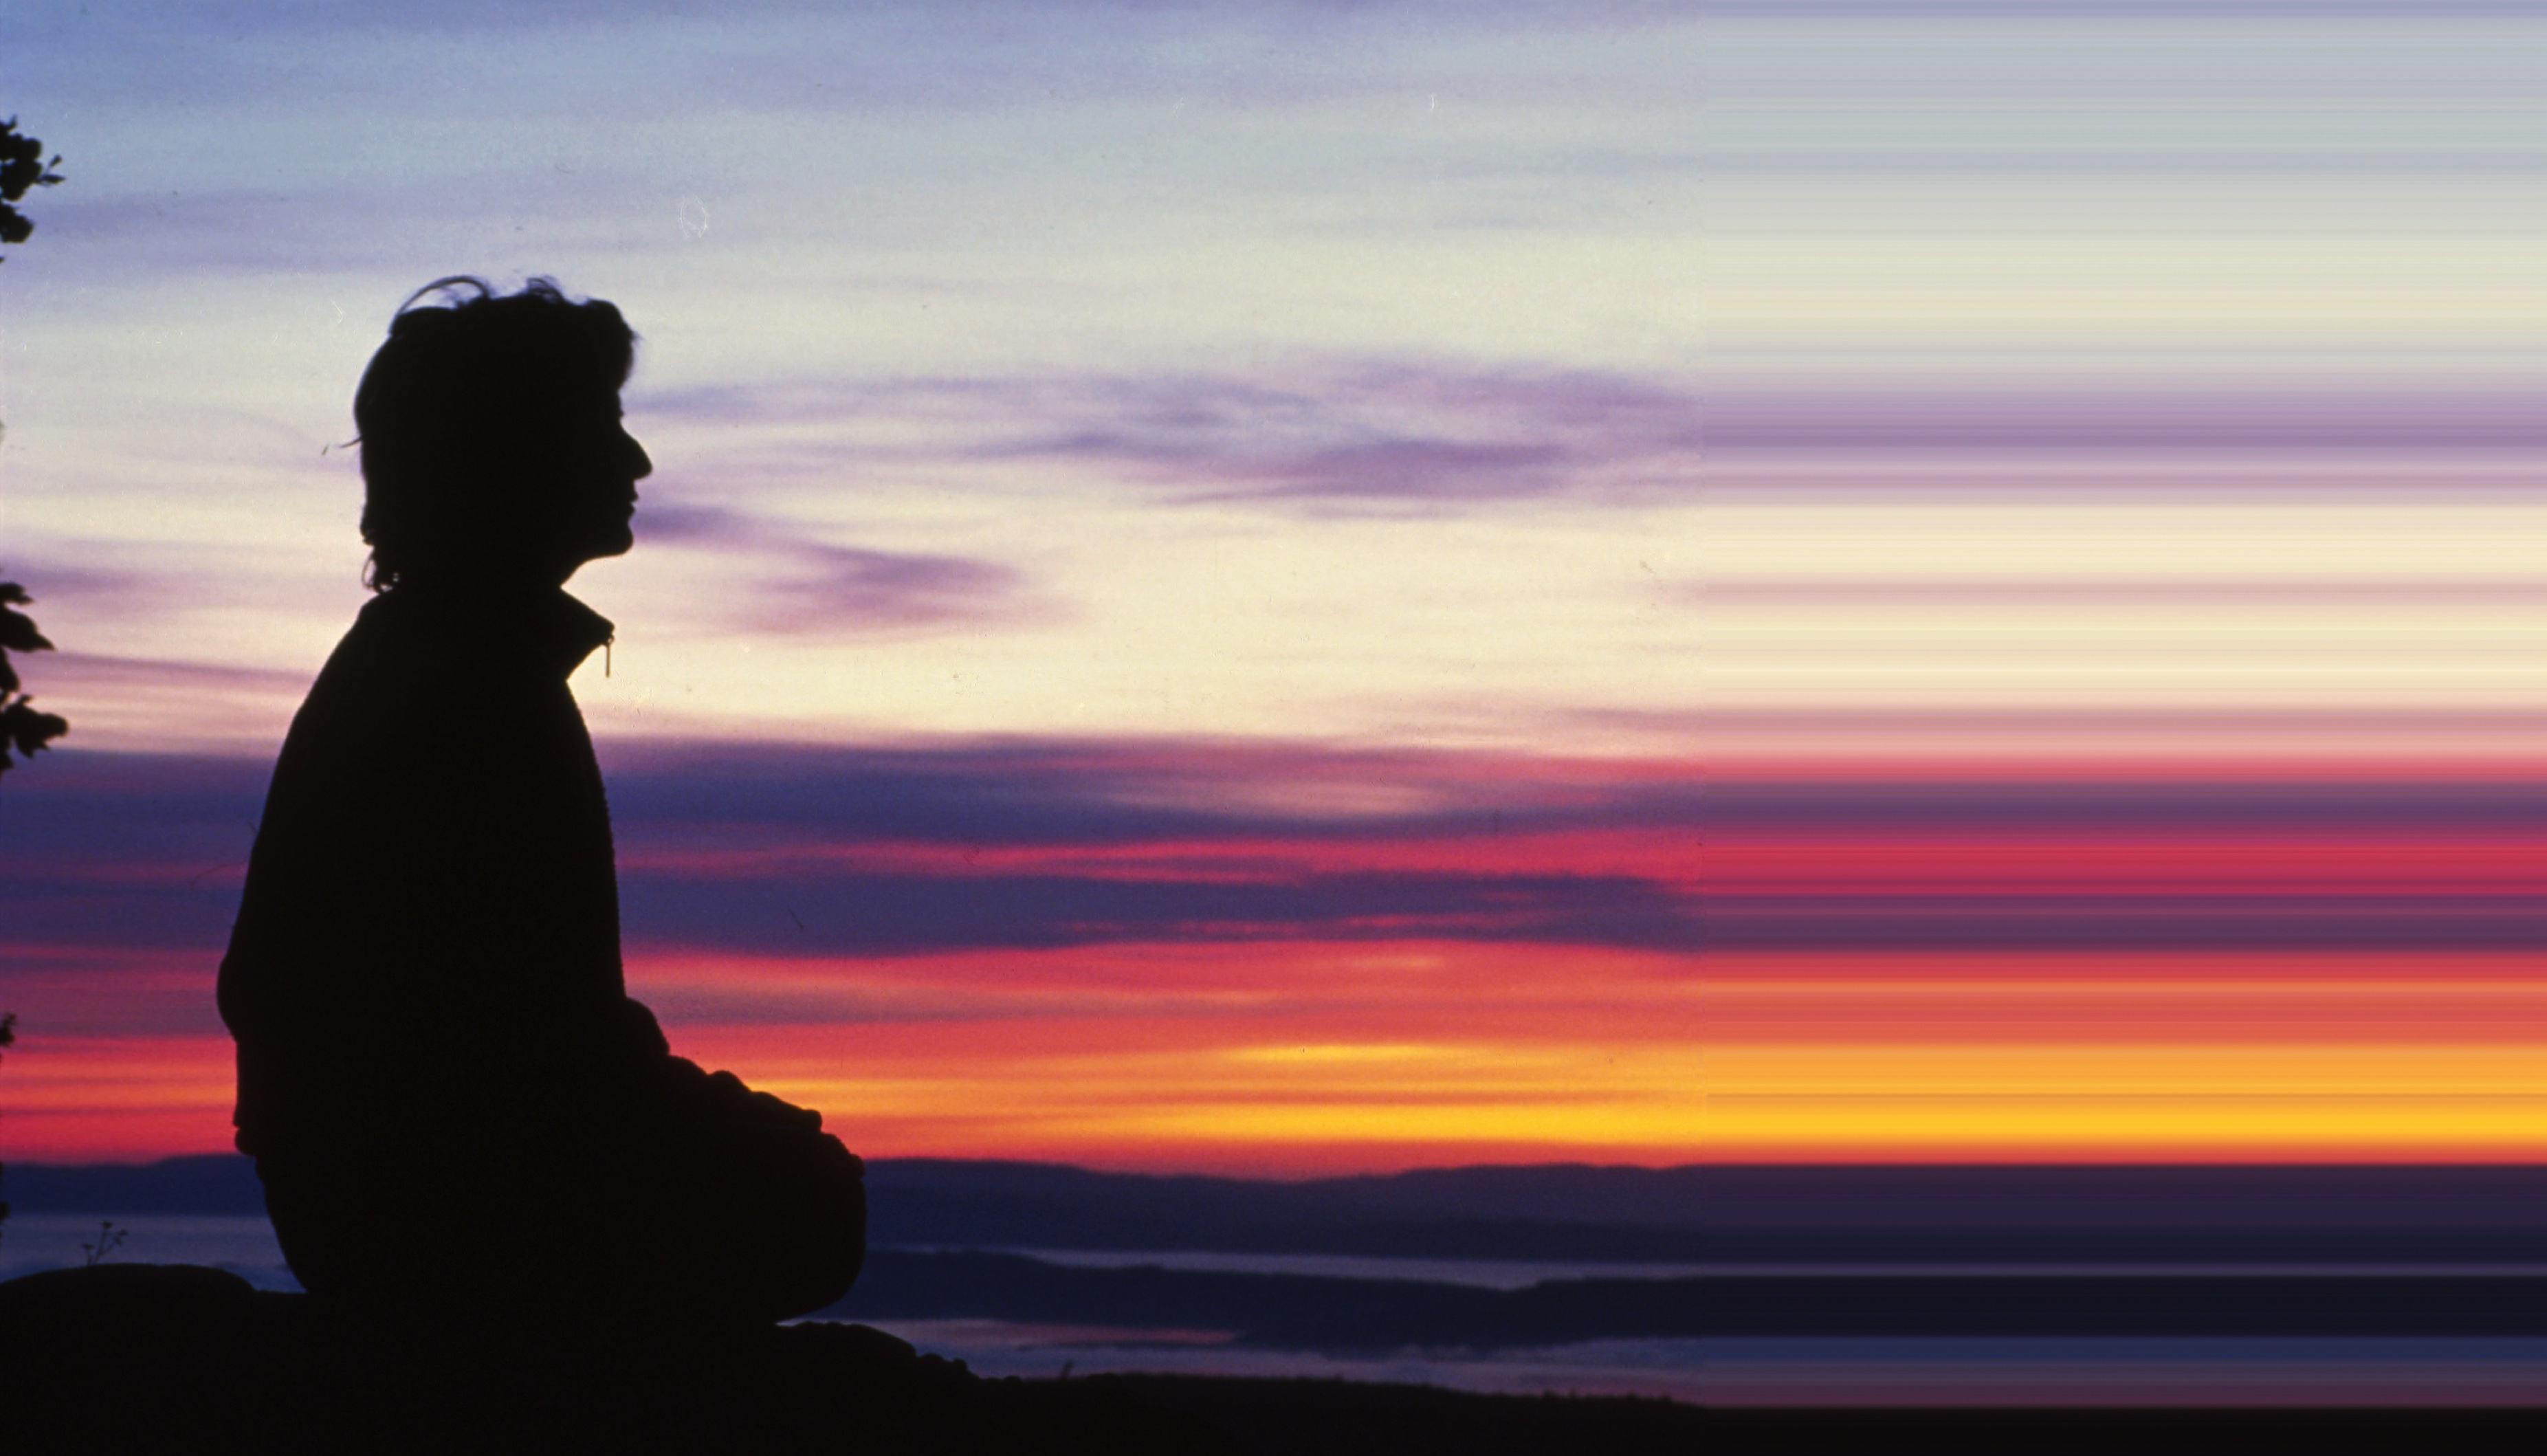 Meditation at sunset photo